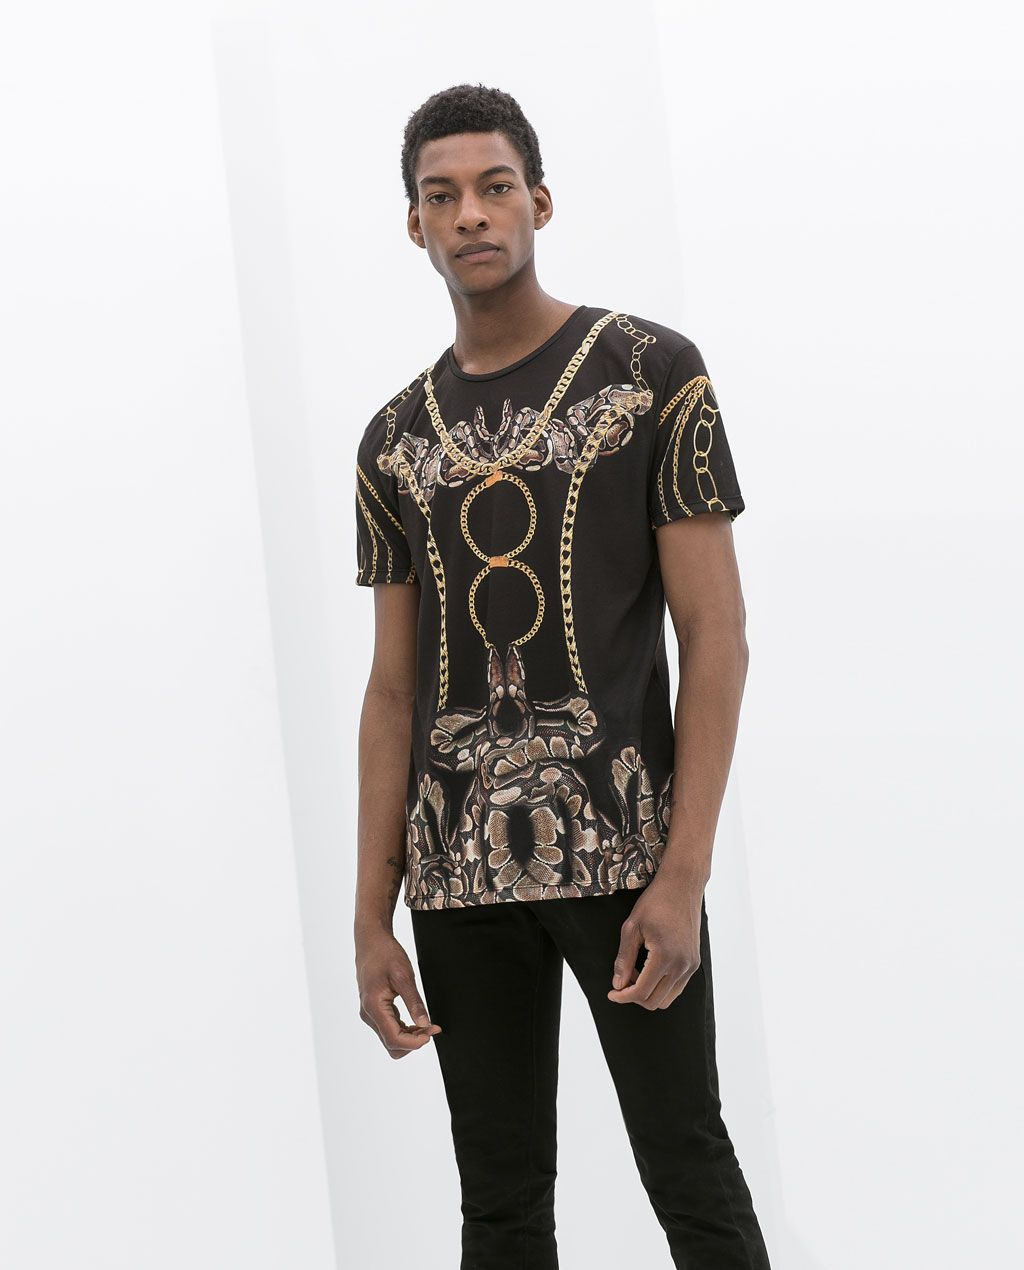 envío directo original de costura caliente chic clásico ZARA - MAN - SNAKE PRINT T-SHIRT | Men fashion♀ | Zara ...